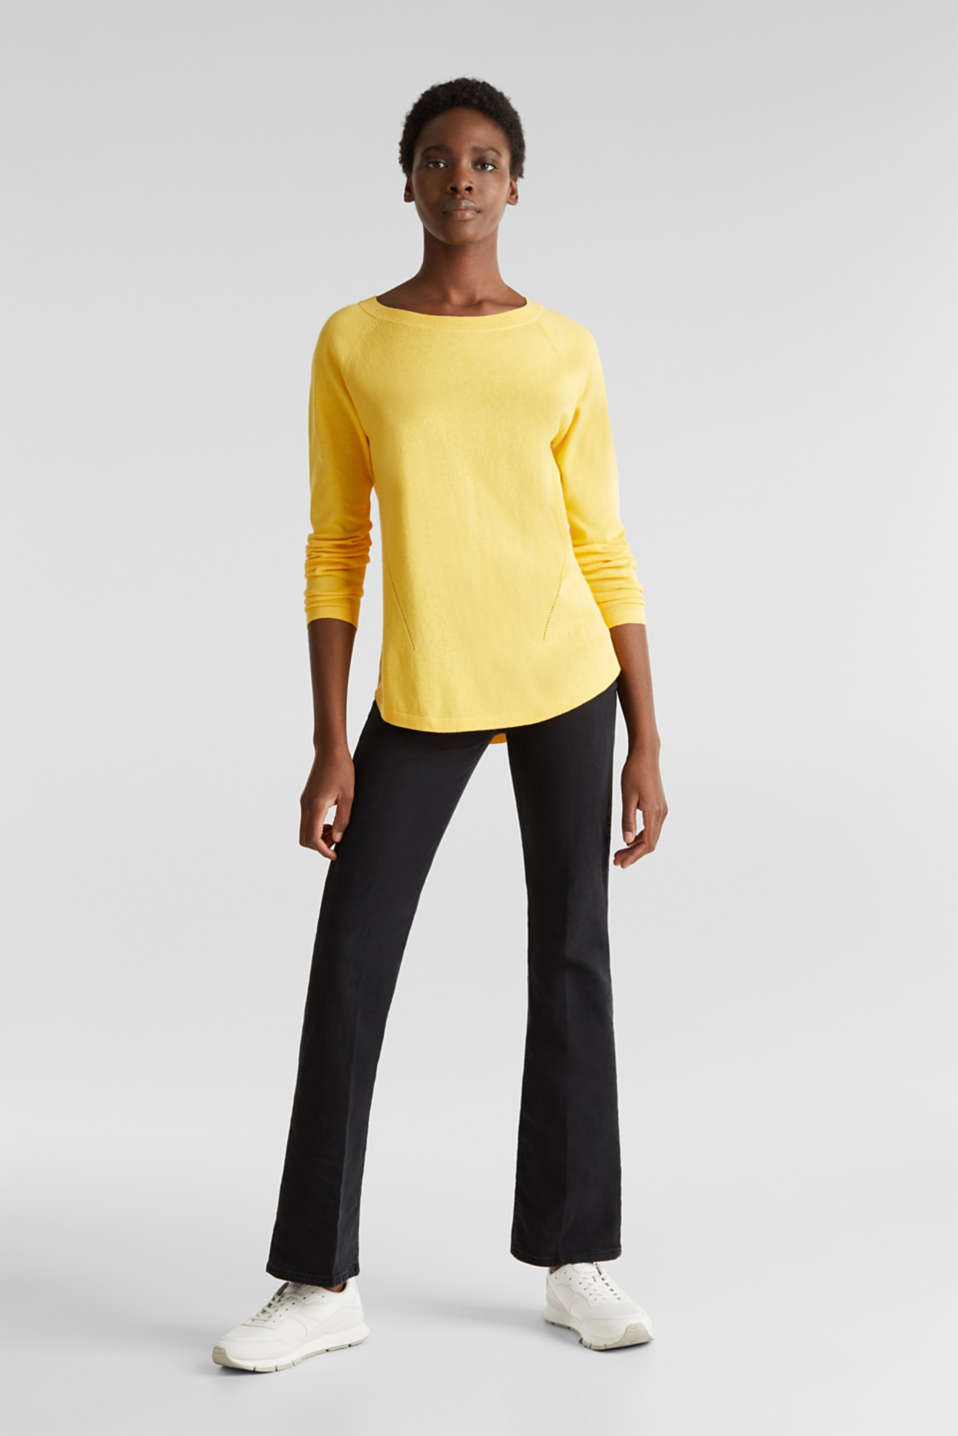 With linen: Jumper with open-work patterned details, YELLOW, detail image number 1